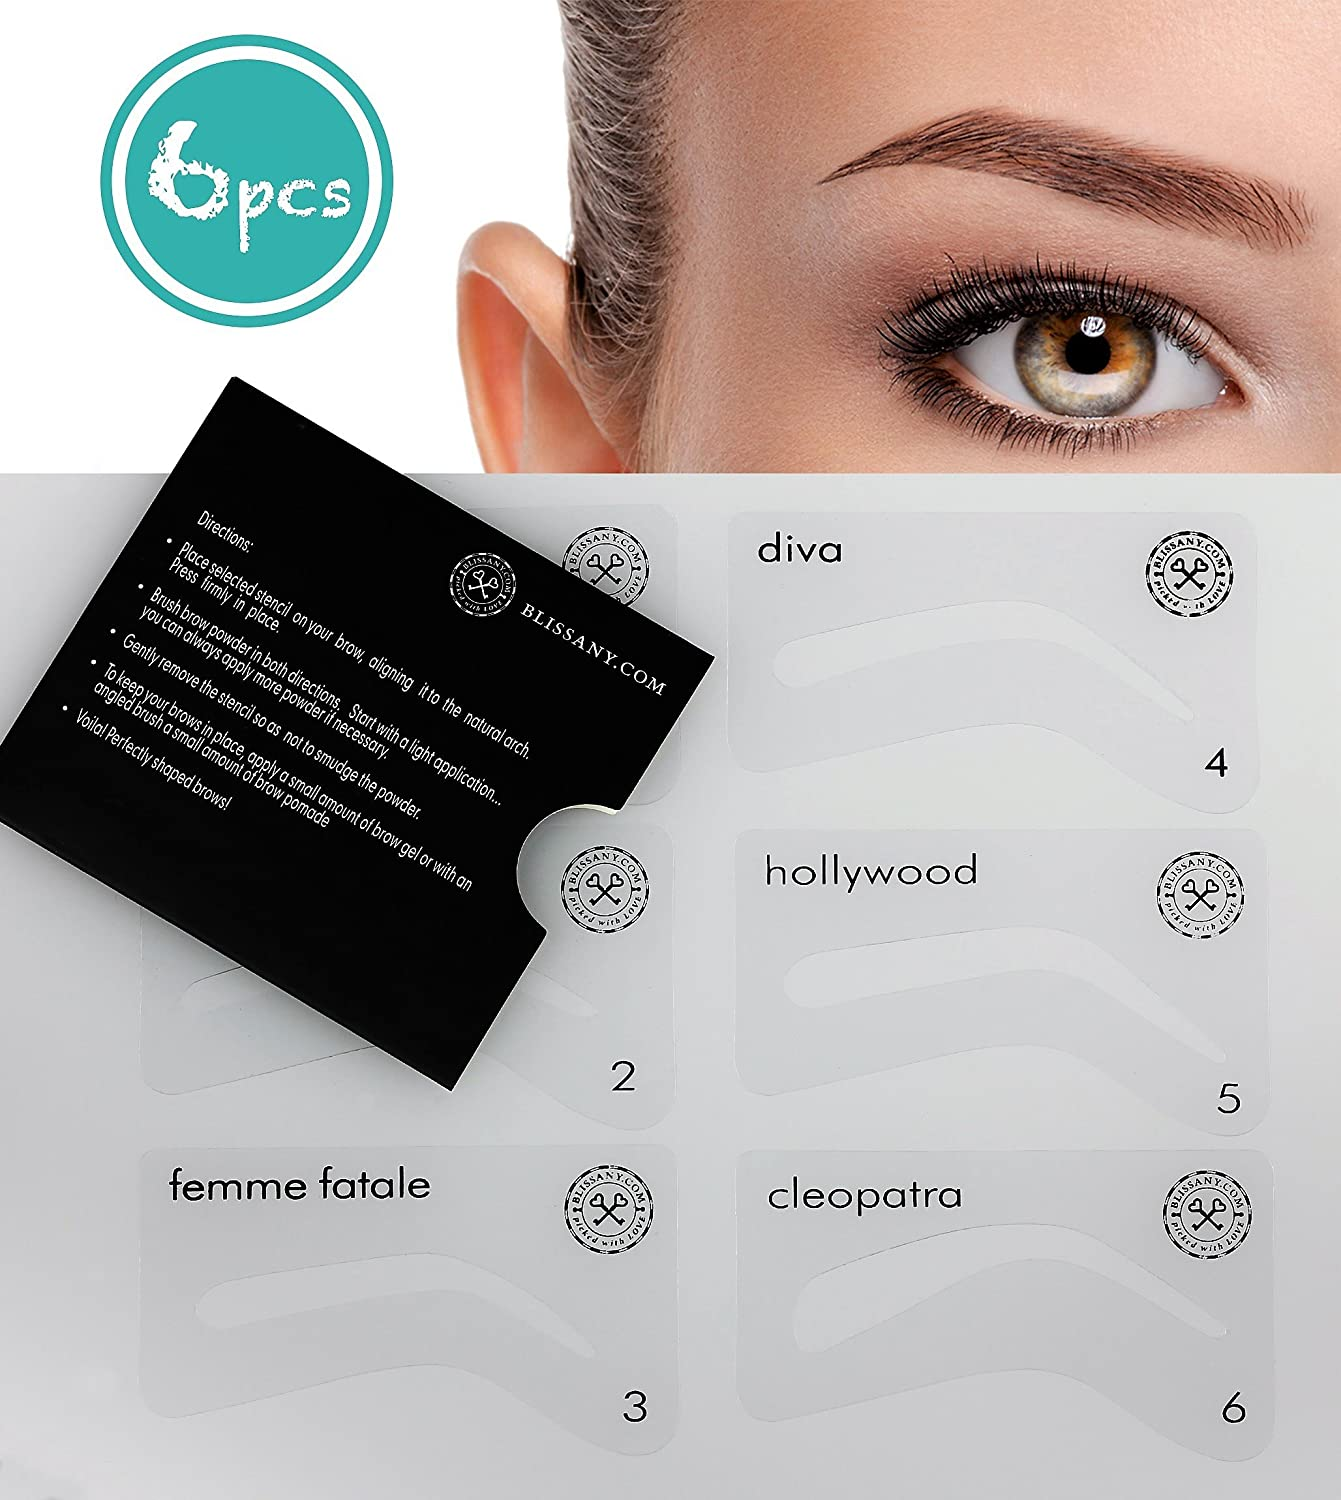 Amazon Eyebrow Stencil For Styling Perfectly Plucked And Even